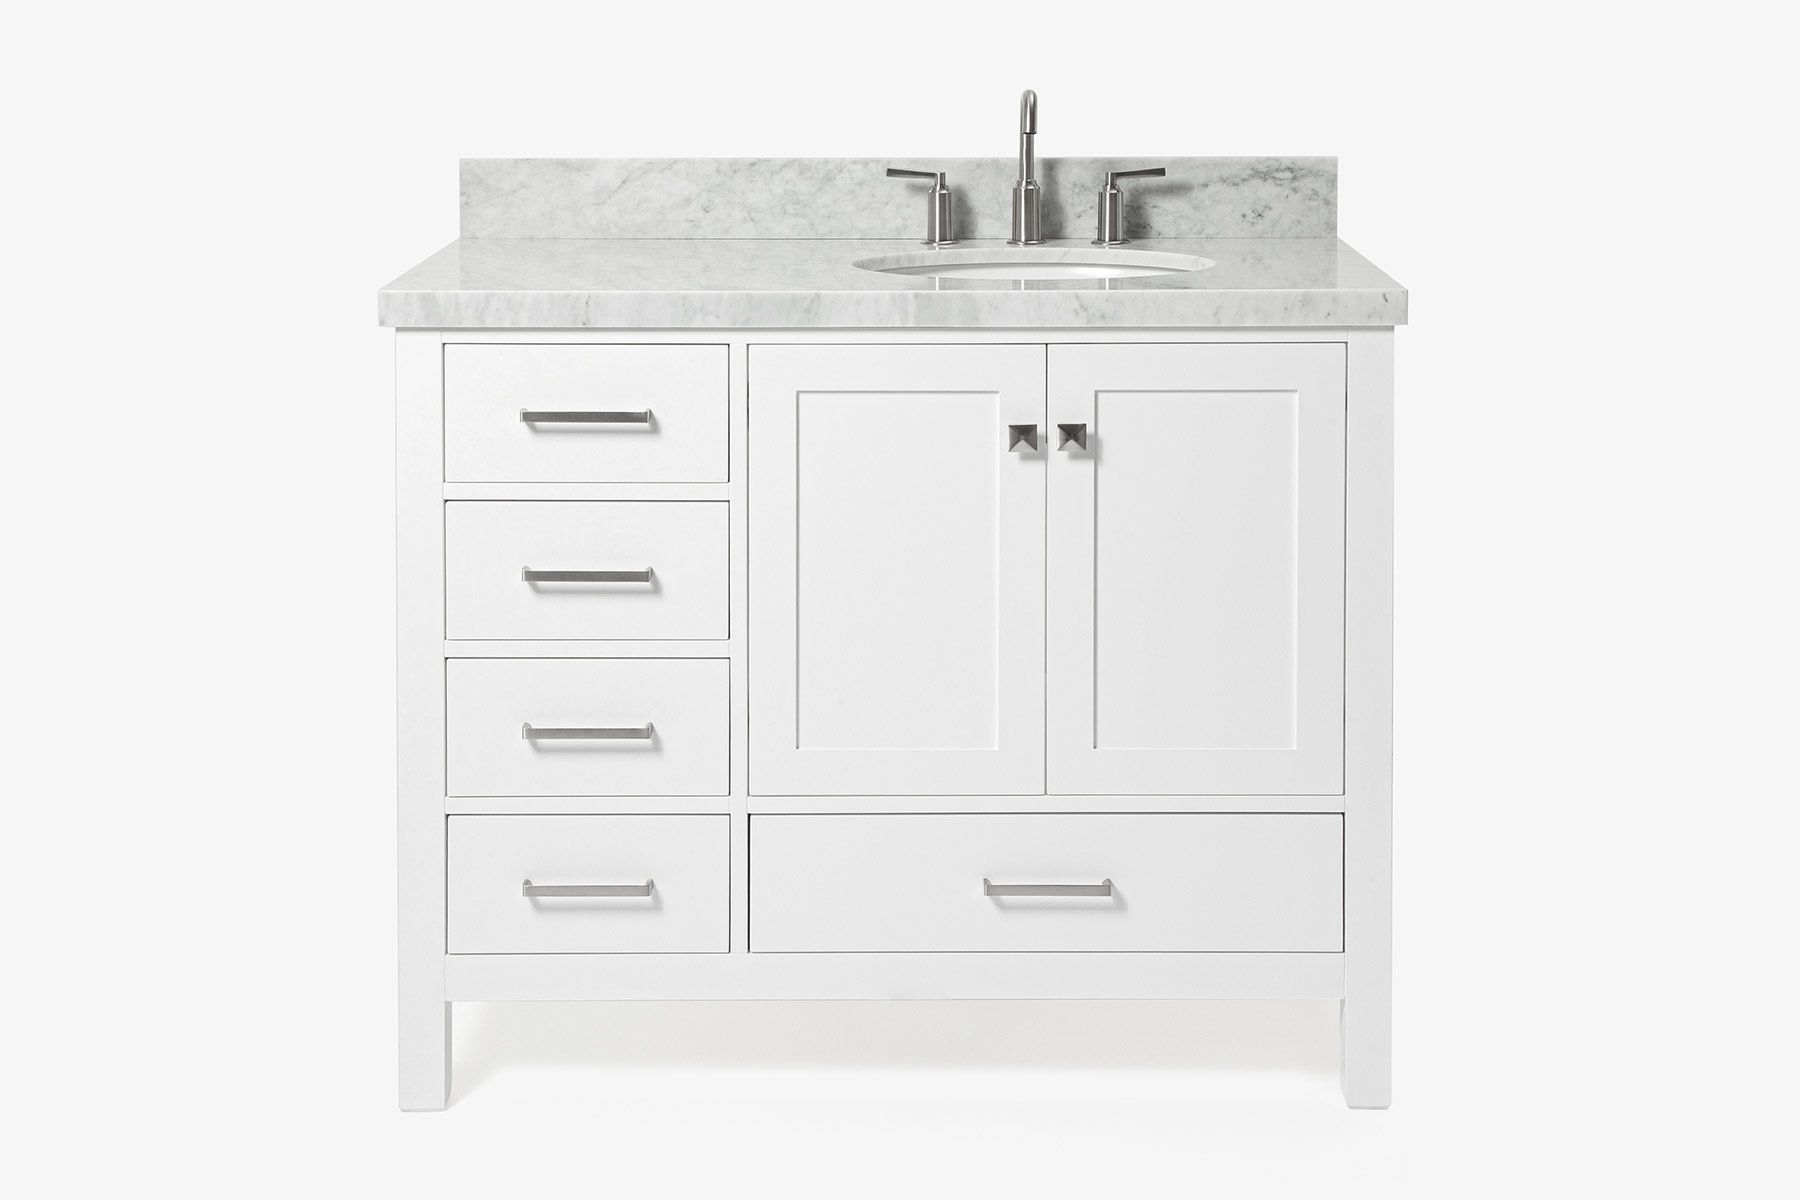 ariel cambridge 43 in right offset single oval sink vanity in white